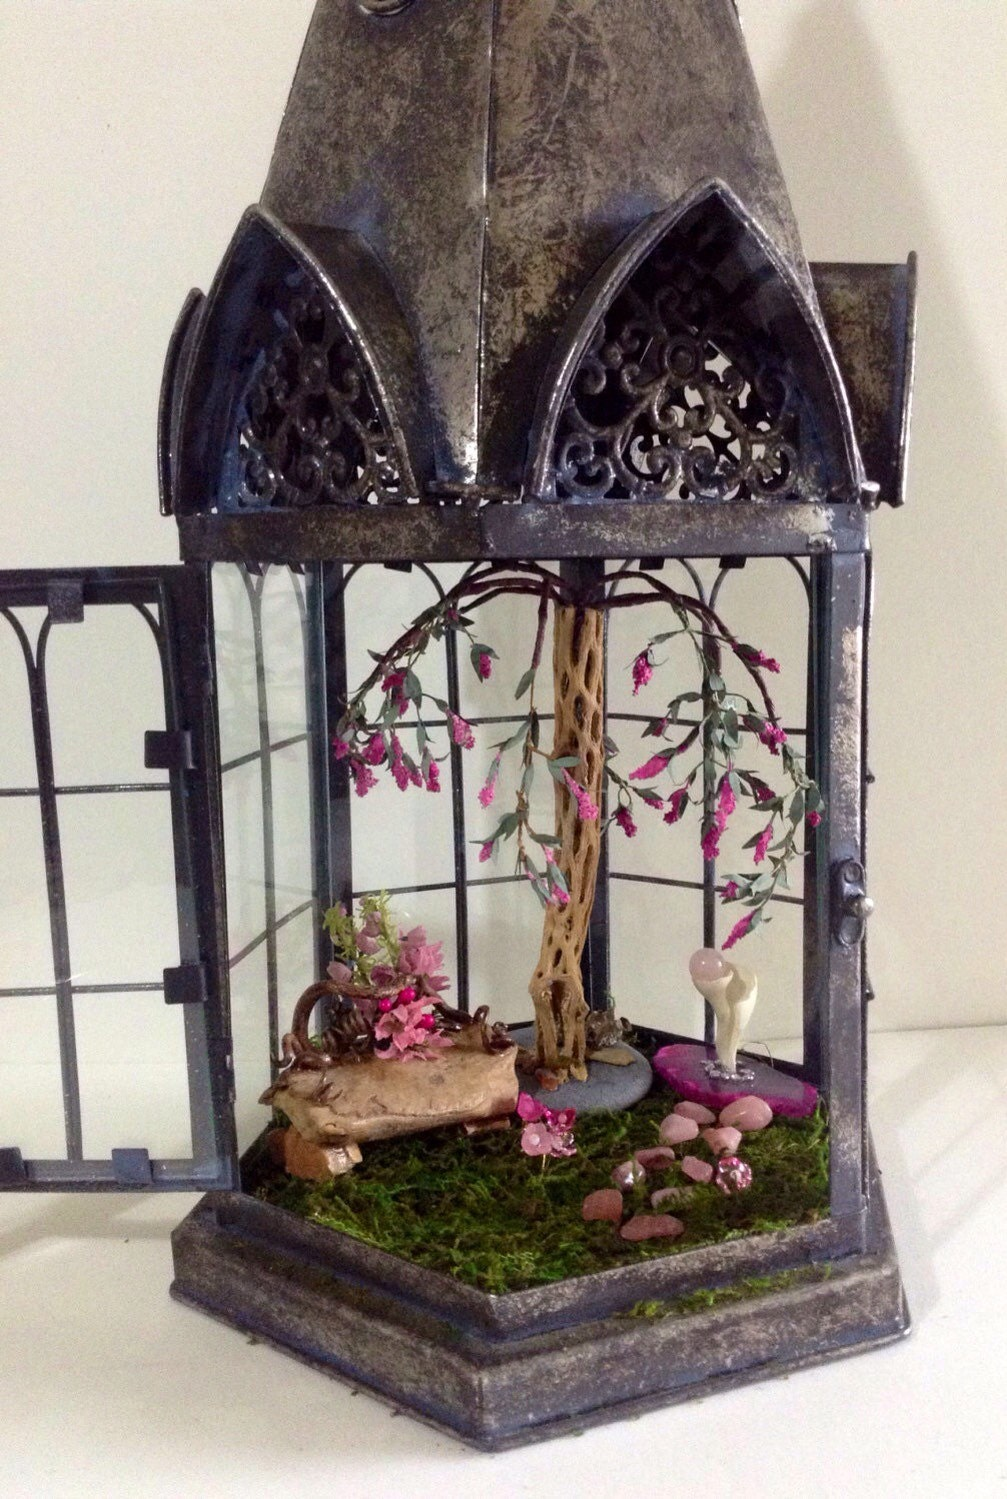 Large Church Shaped Lantern Fairy Garden Kit Unique Spring